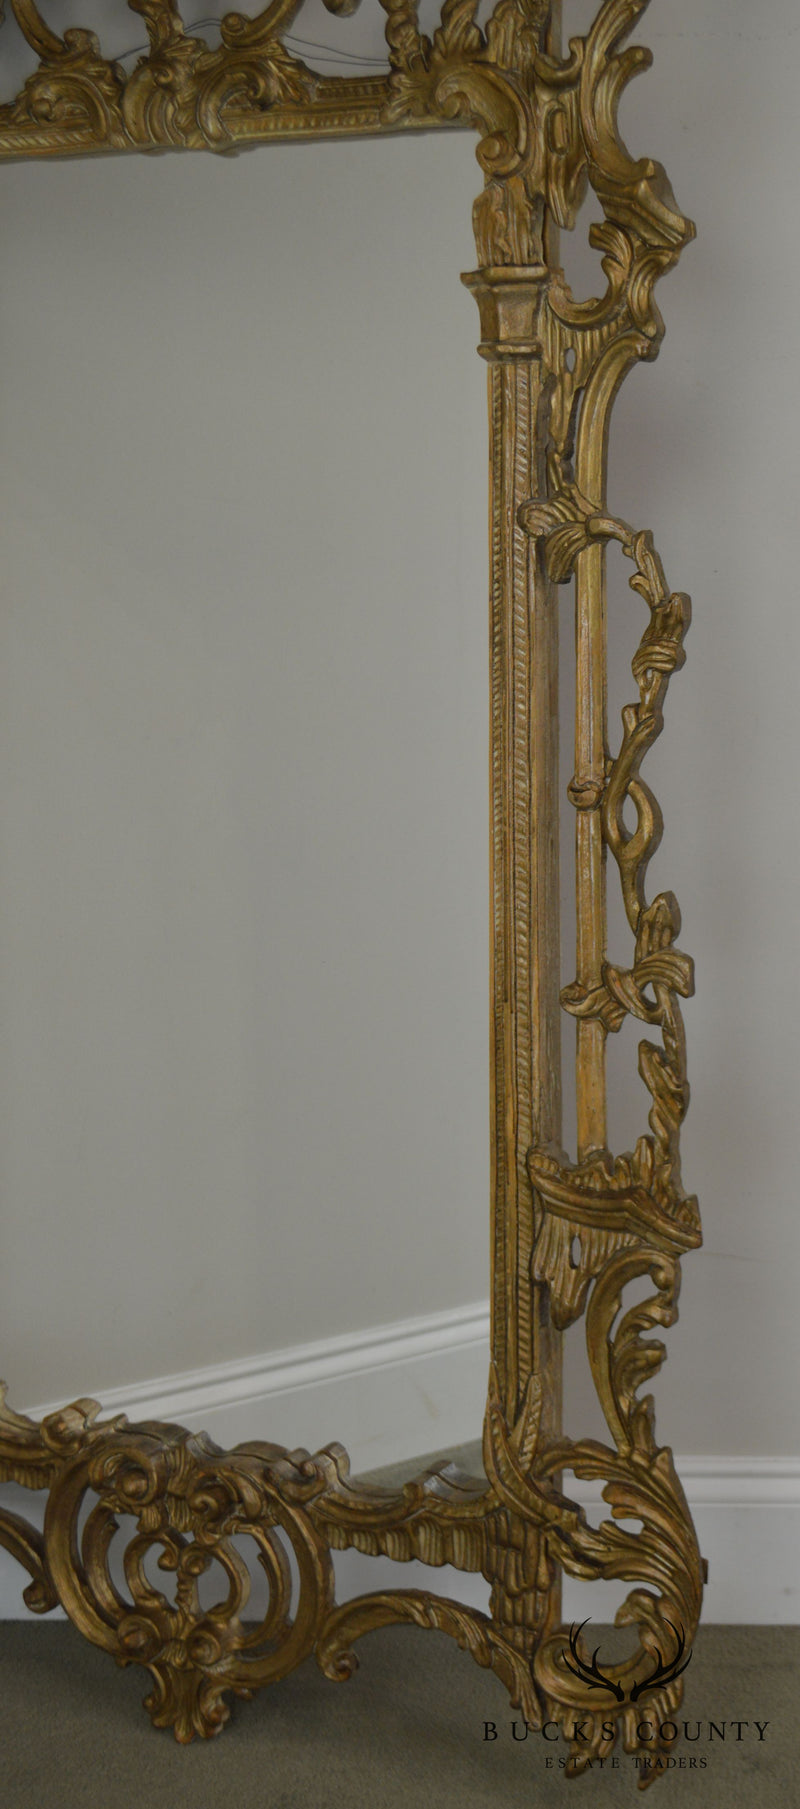 Chinese Chippendale Pagoda Top Italian Carved Gilt Wood Wall Mirror